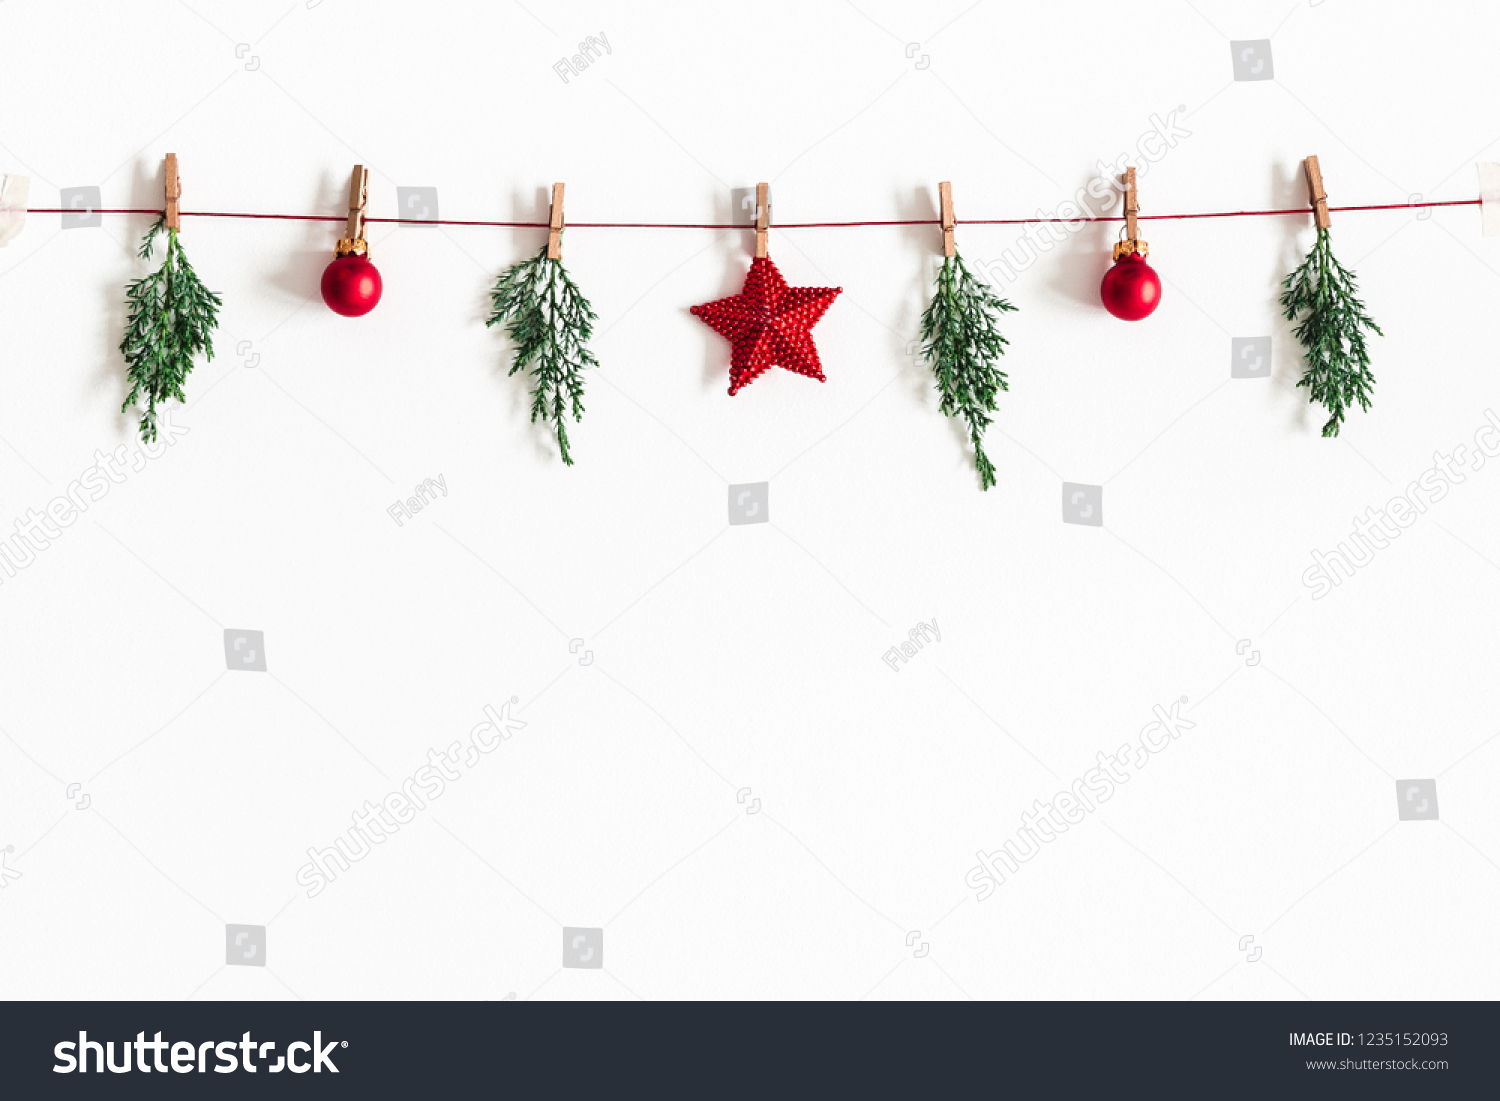 Christmas composition. Garland made of red balls and fir tree branches on white background. Christmas, winter, new year concept. Flat lay, top view, copy space #1235152093